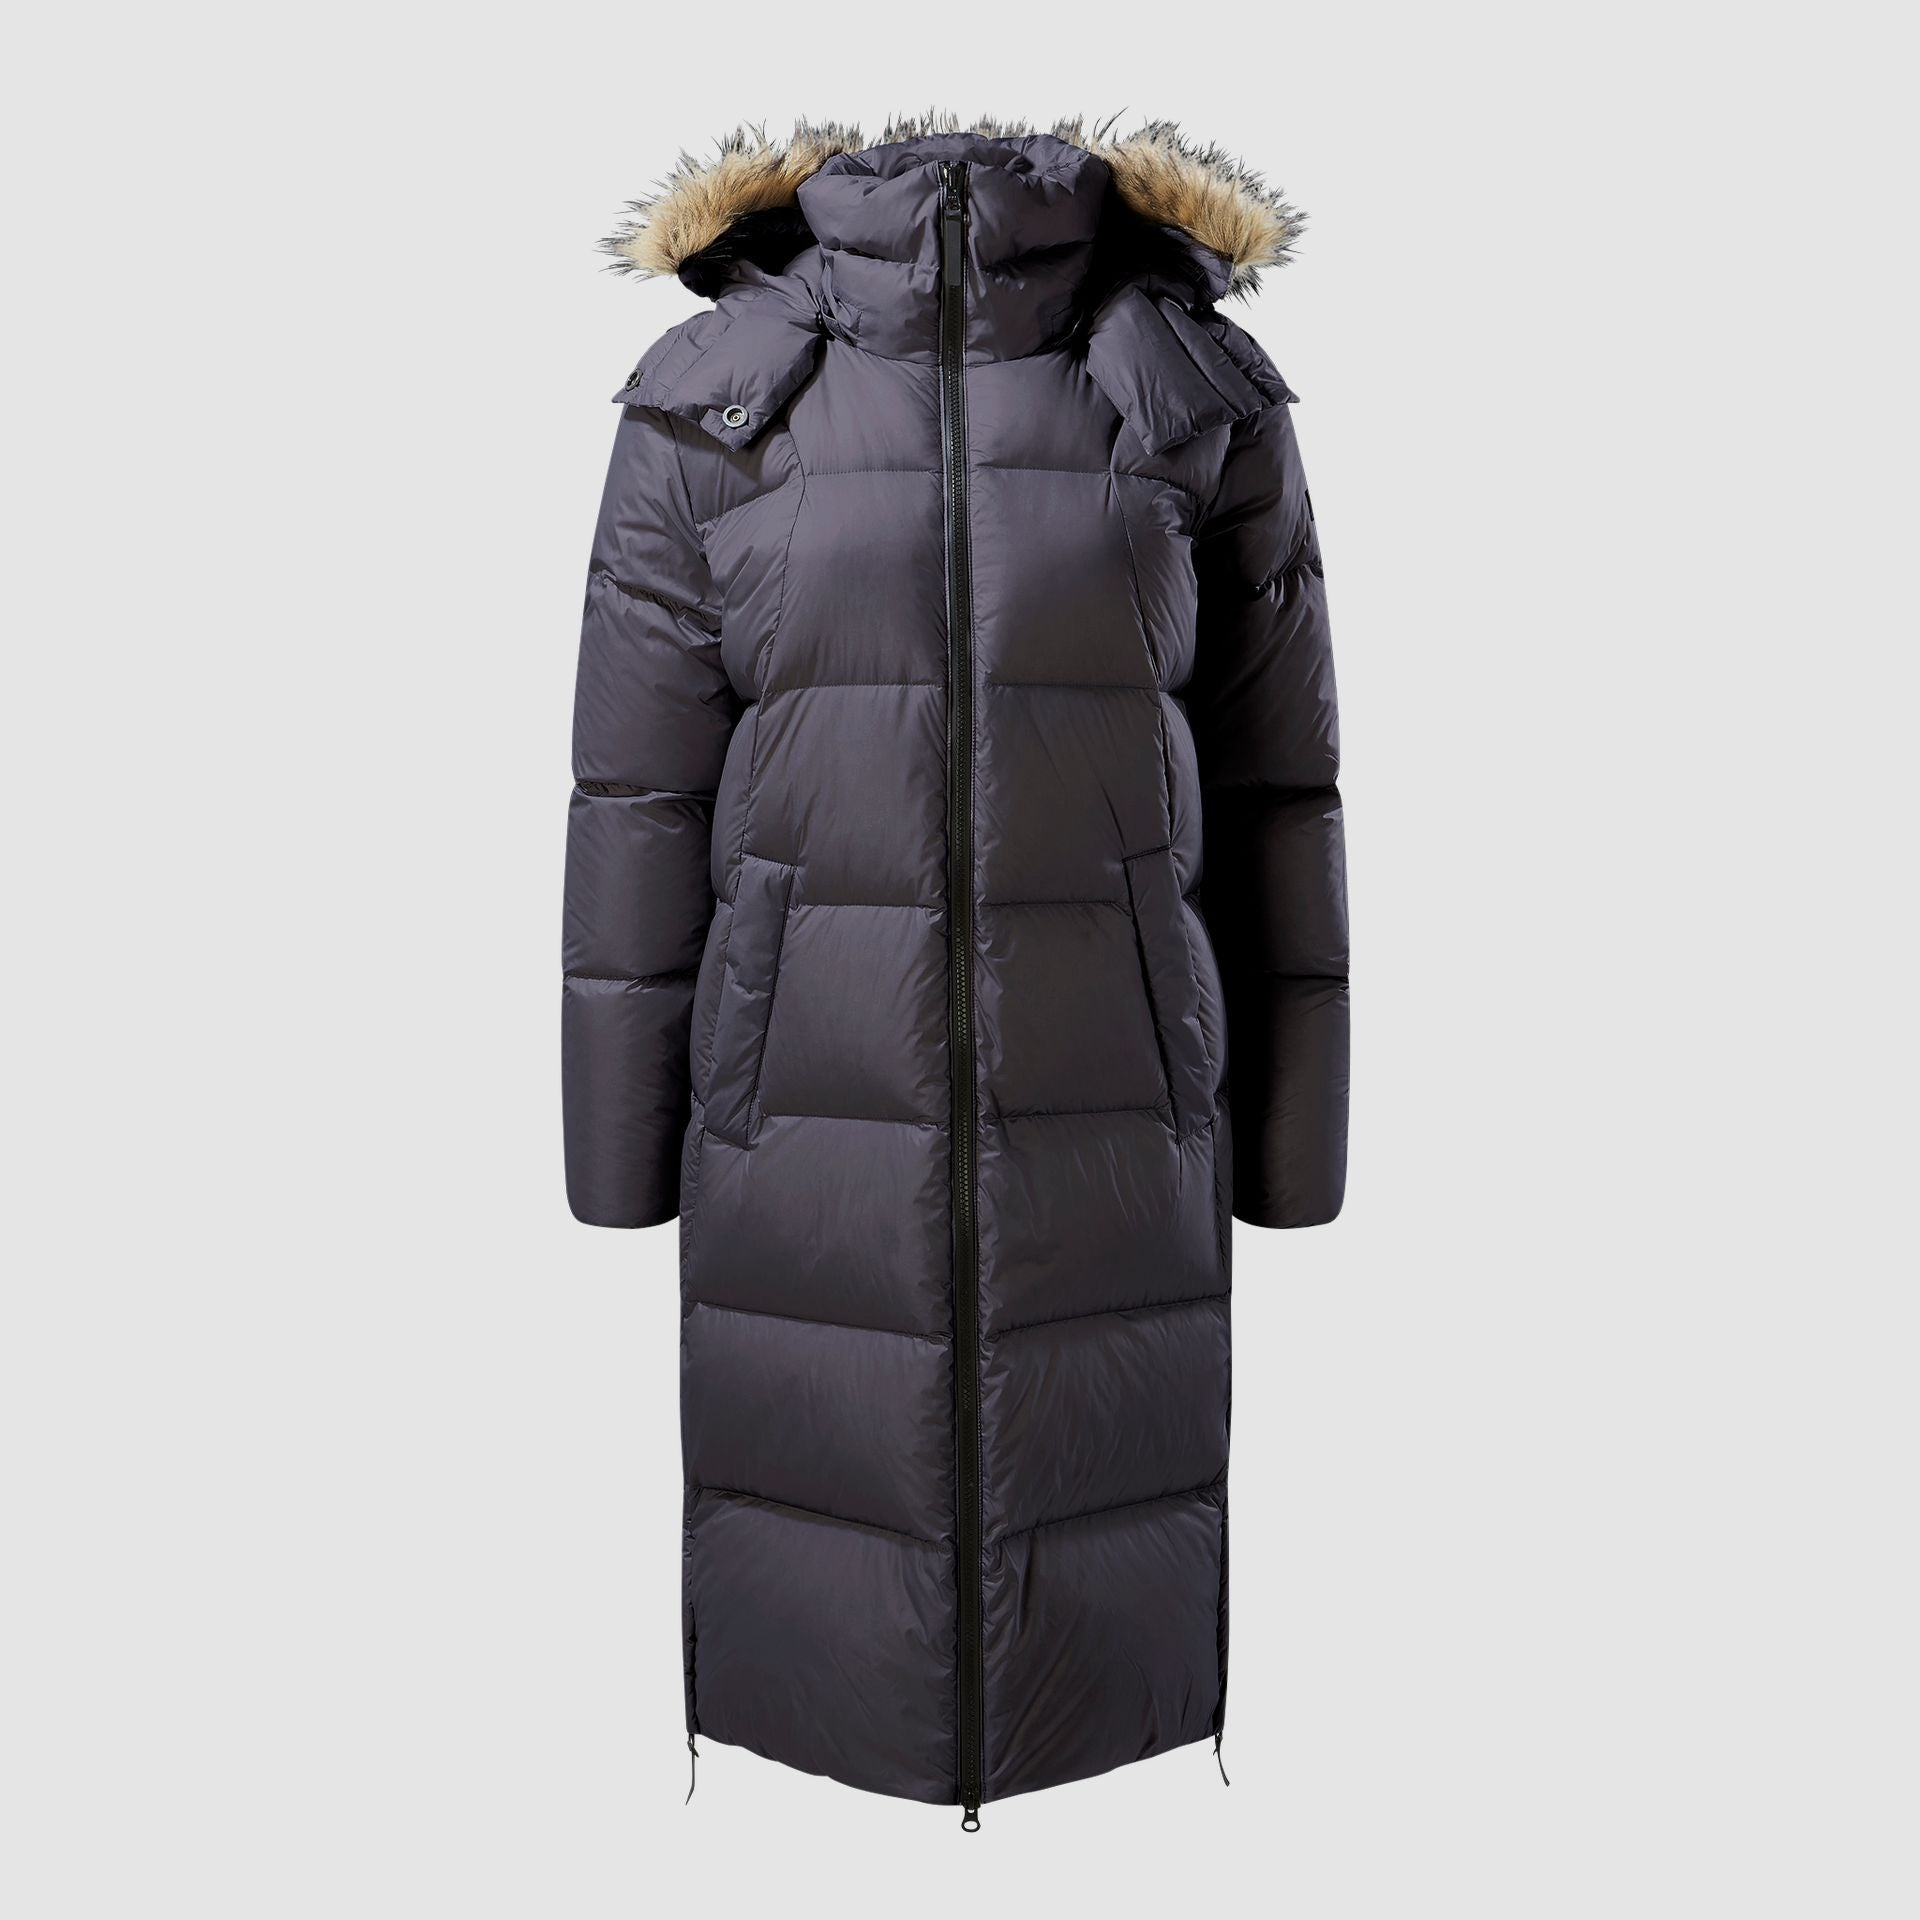 JACK WOLFSKIN TECHLAB -  Windproof Jacket |  Winter Coat